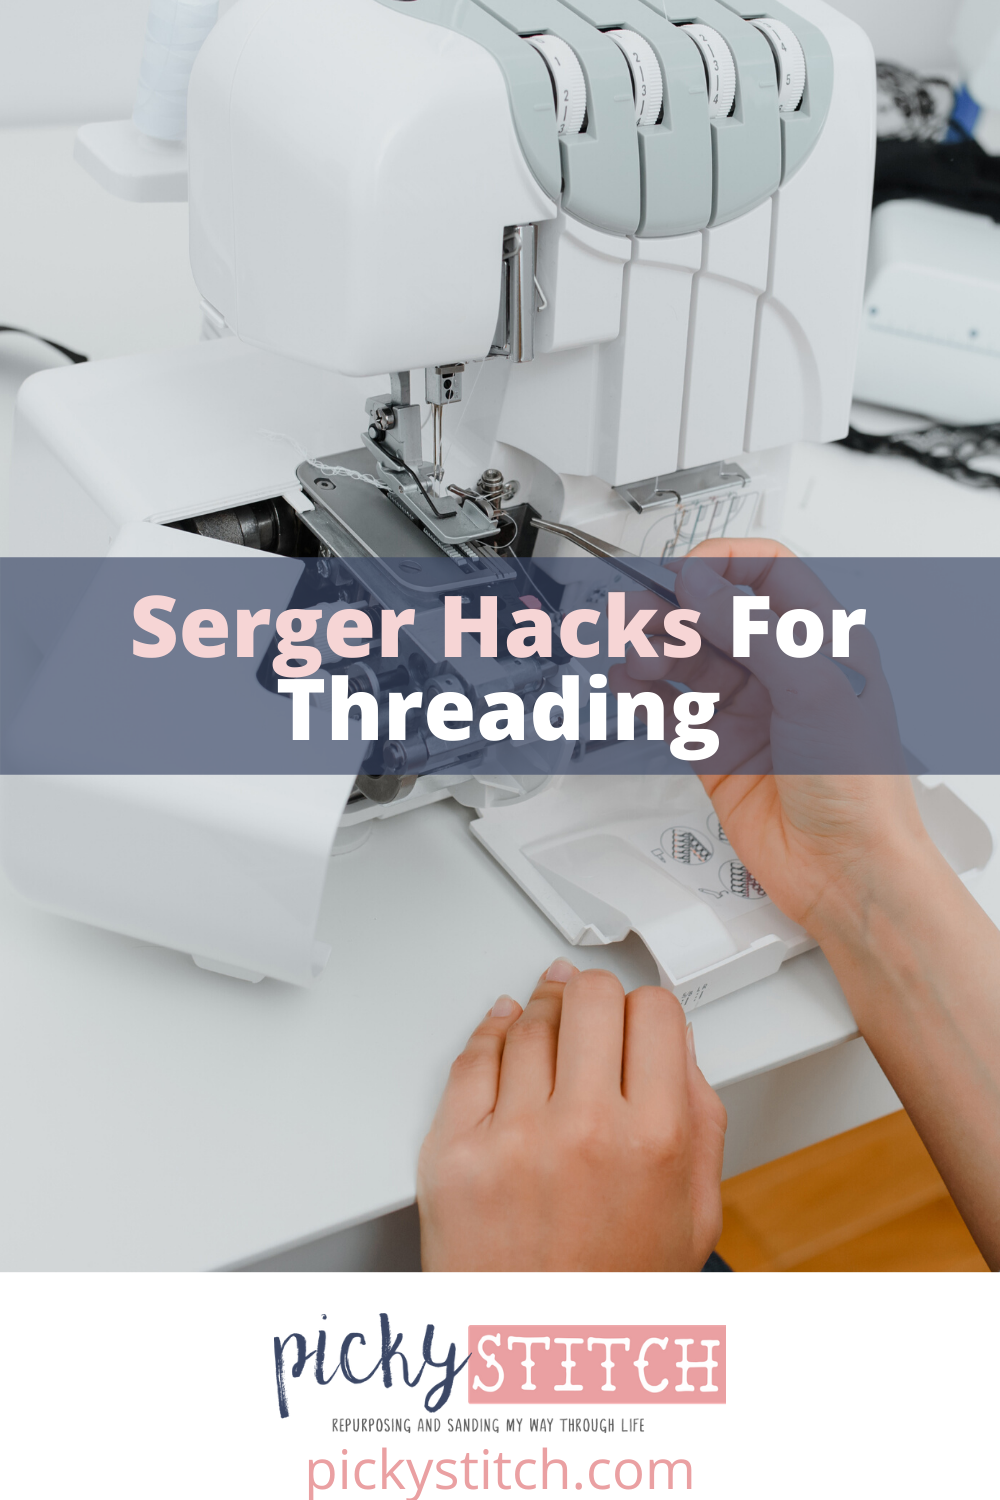 Are you getting hung up on threading your serger. It can be a little tricky especially if you are a beginner. Let Picky Stitch help. Keep reading for hacks about threading, seams and more. #pcikystitchblog #sewinghacks #sergerhacks #sewingtipsandtricks